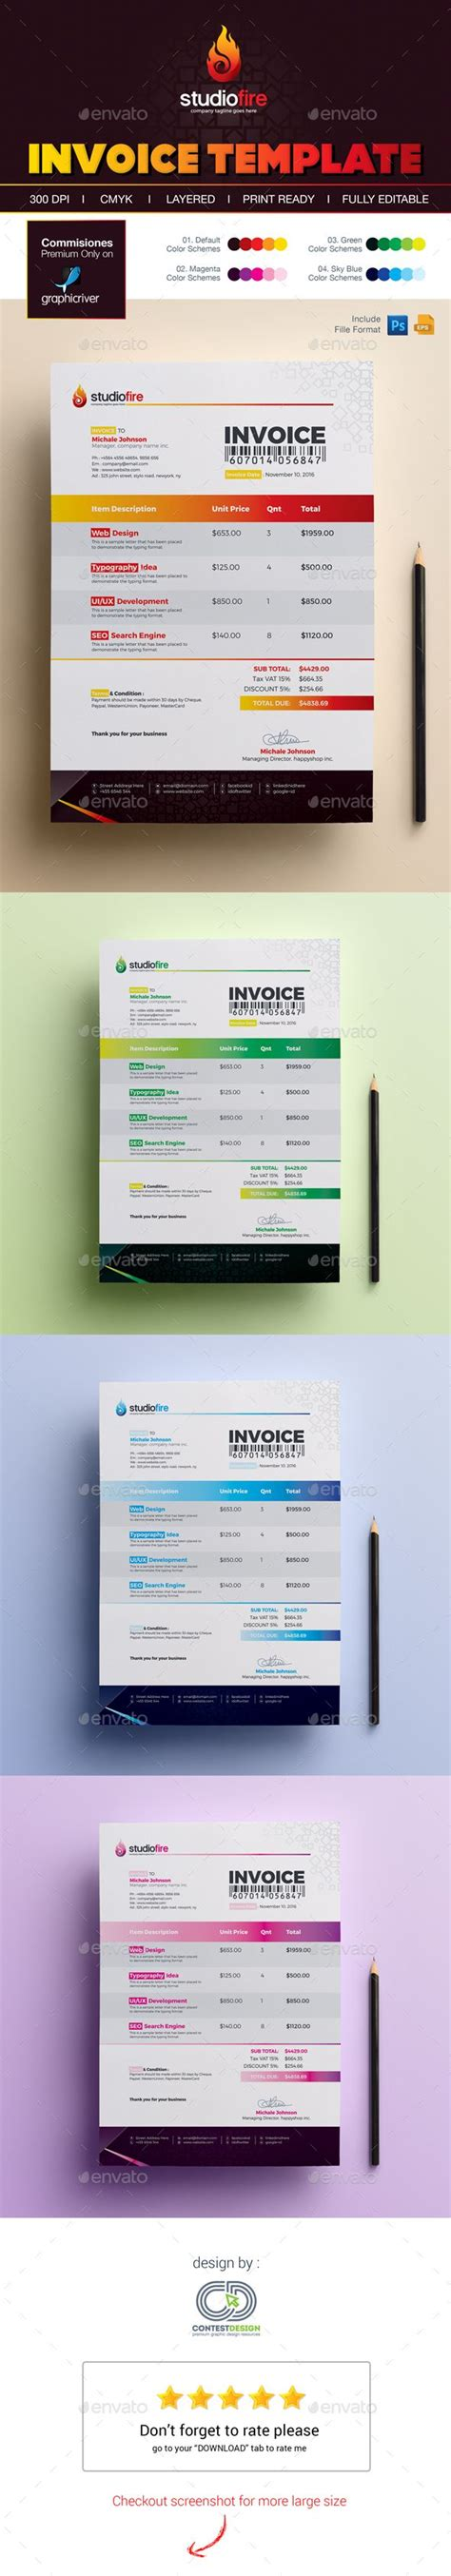 invoice template ai 1000 ideas about invoice template on